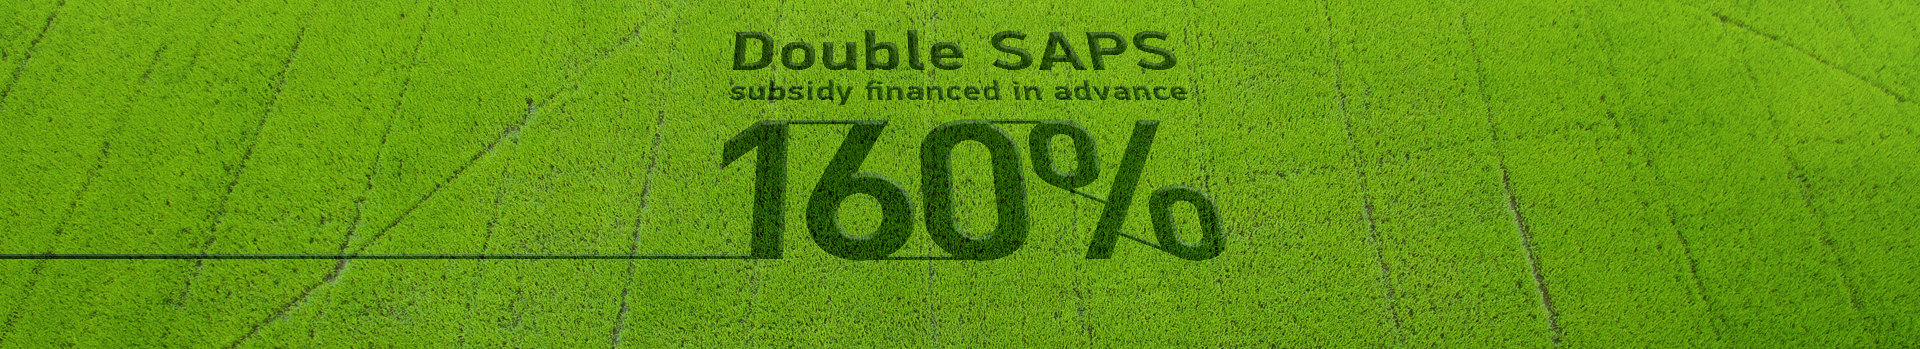 Double SAPS Pre-financing Loan